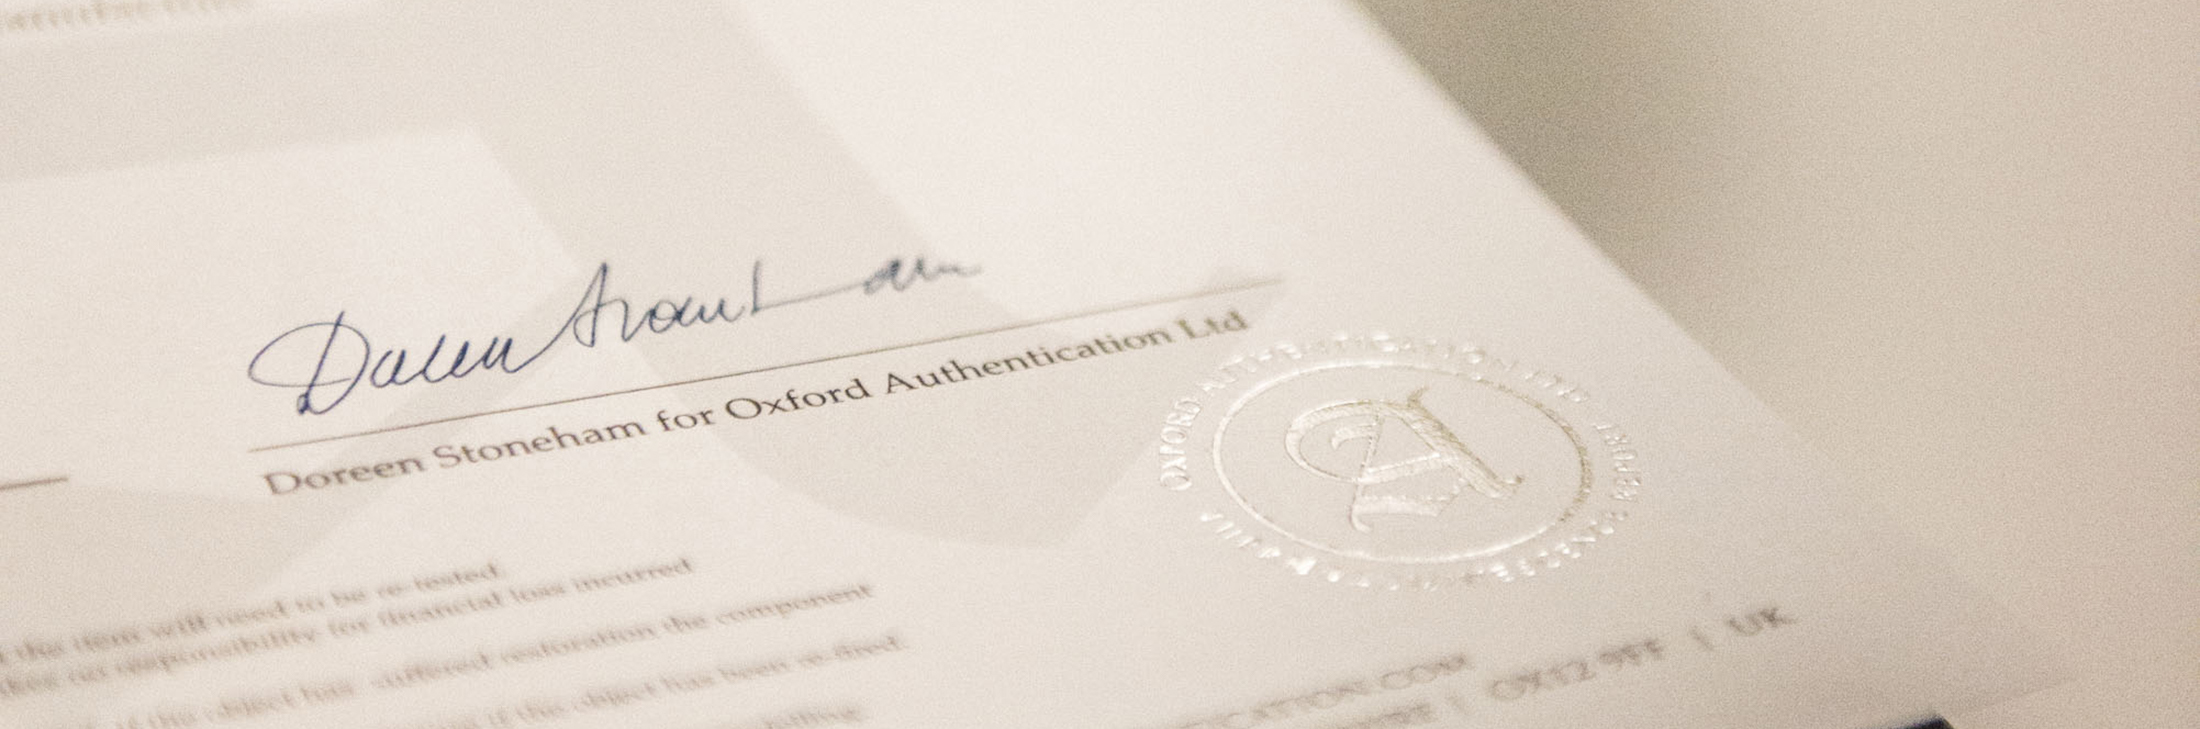 Oxford-Authentication-TL-thermoluminescence (TL) testing-authenticity-dating_UK_Oxfordshire_sampling porcelain.Certificate